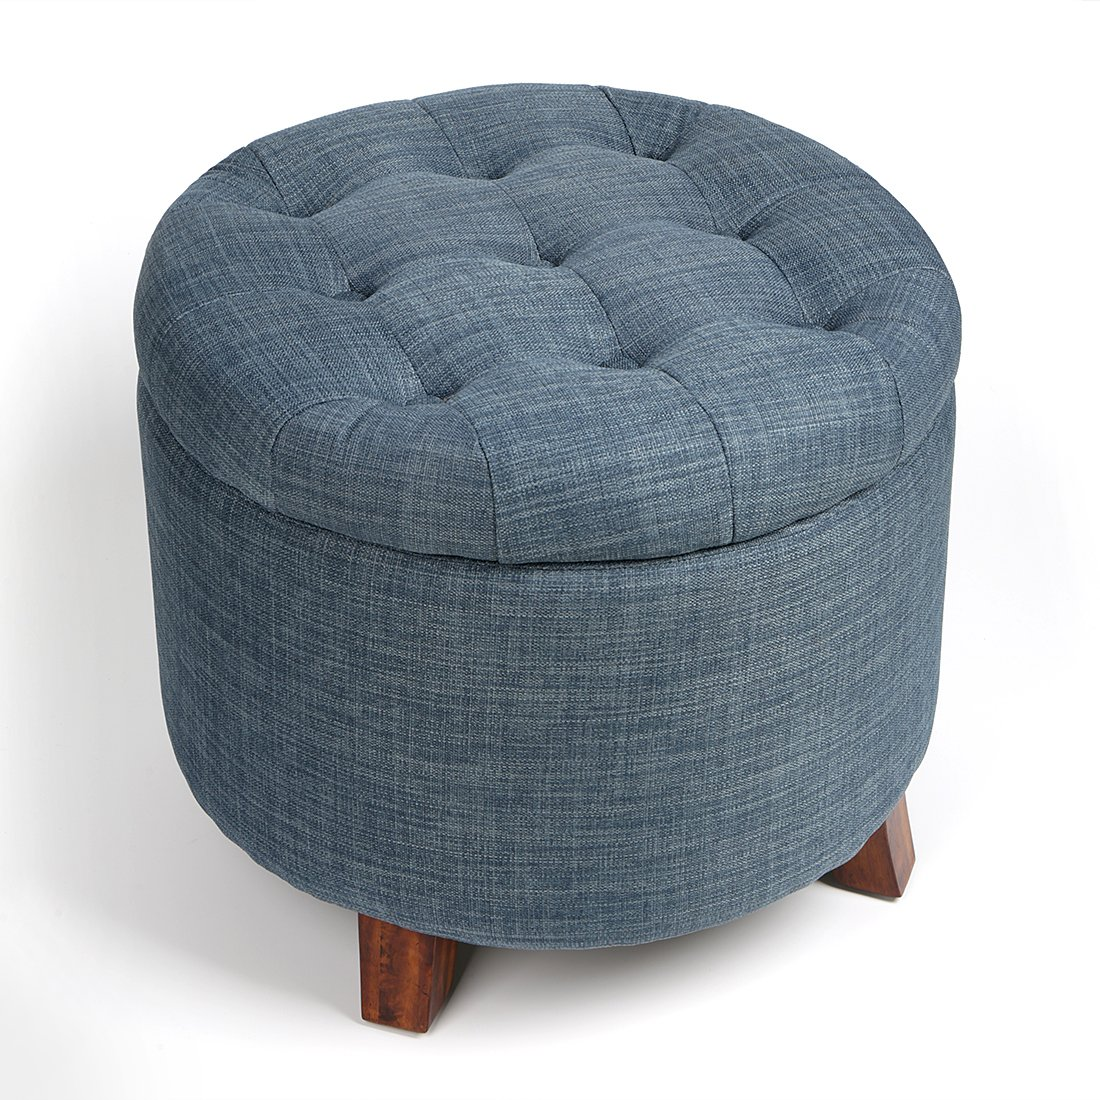 JH Fabric Round Wooden Upholstered Footstools with 4 Beech Legs and Removable Linen Cover Storage Bench Seat Ottoman Blue